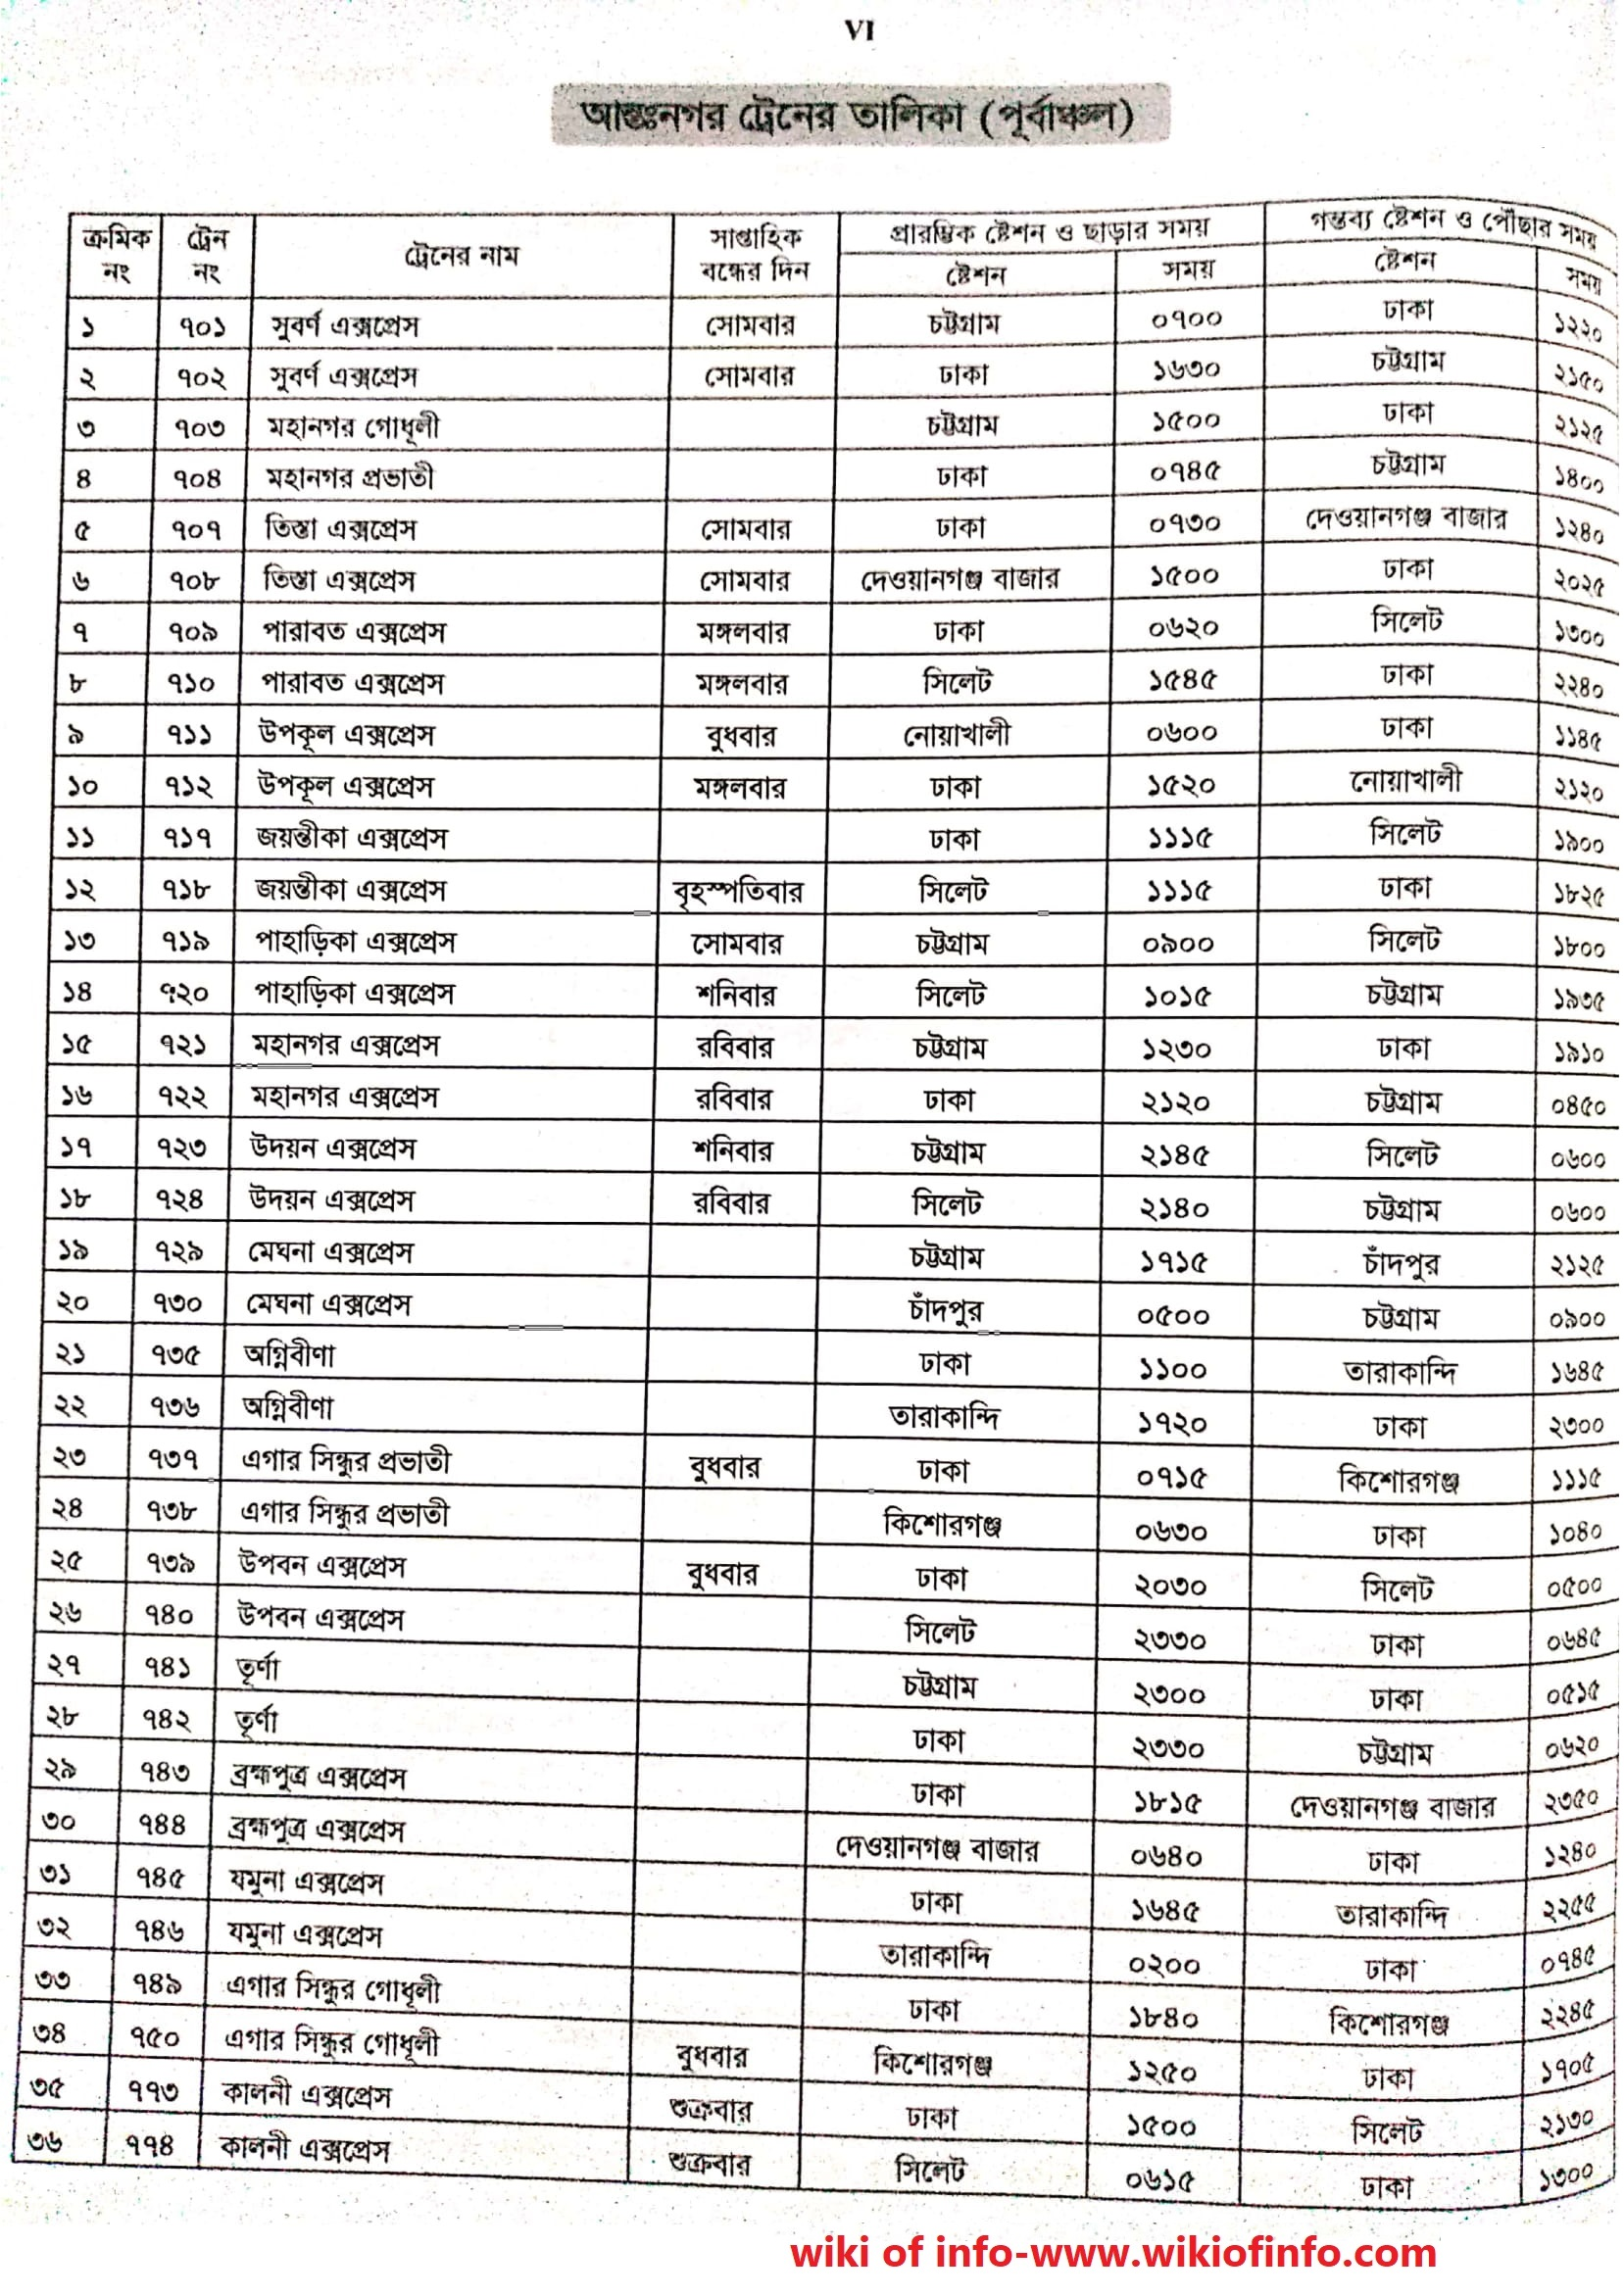 BD Trian Eastern Train Schedule